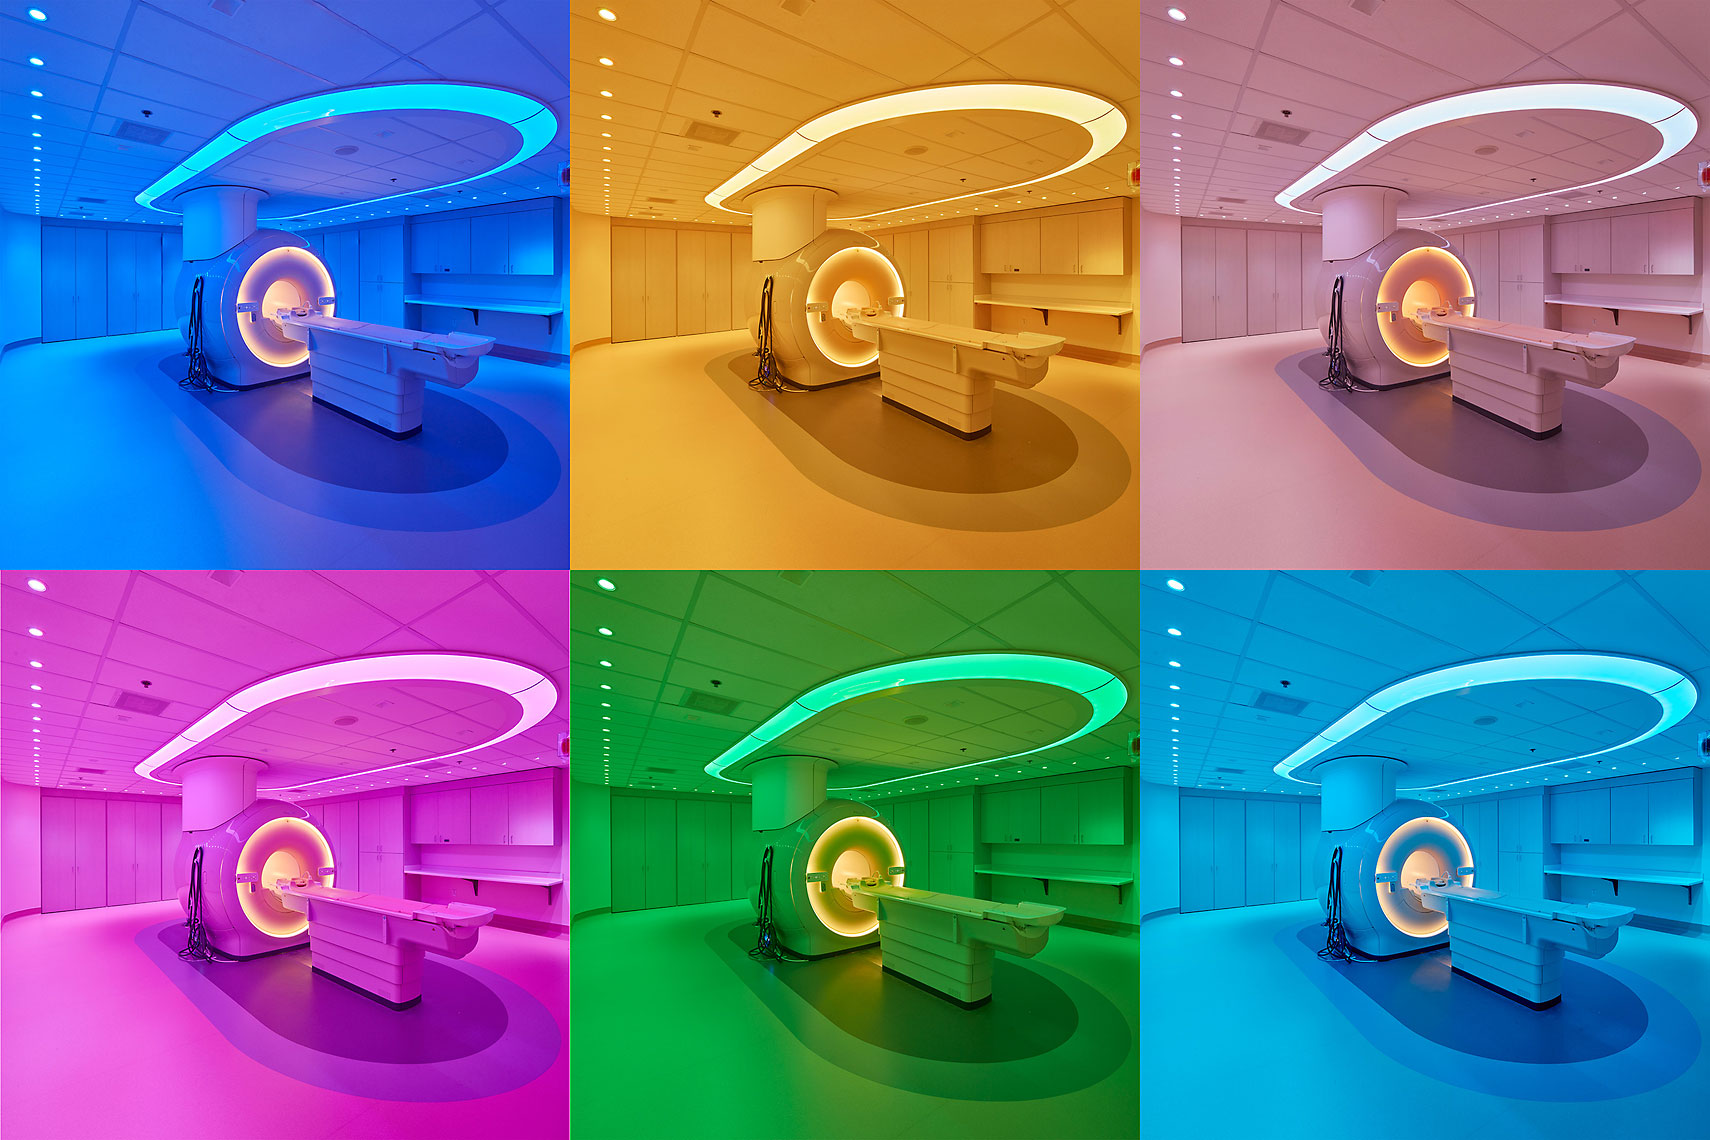 170313_SHC_Emeryville_MRI_Colors